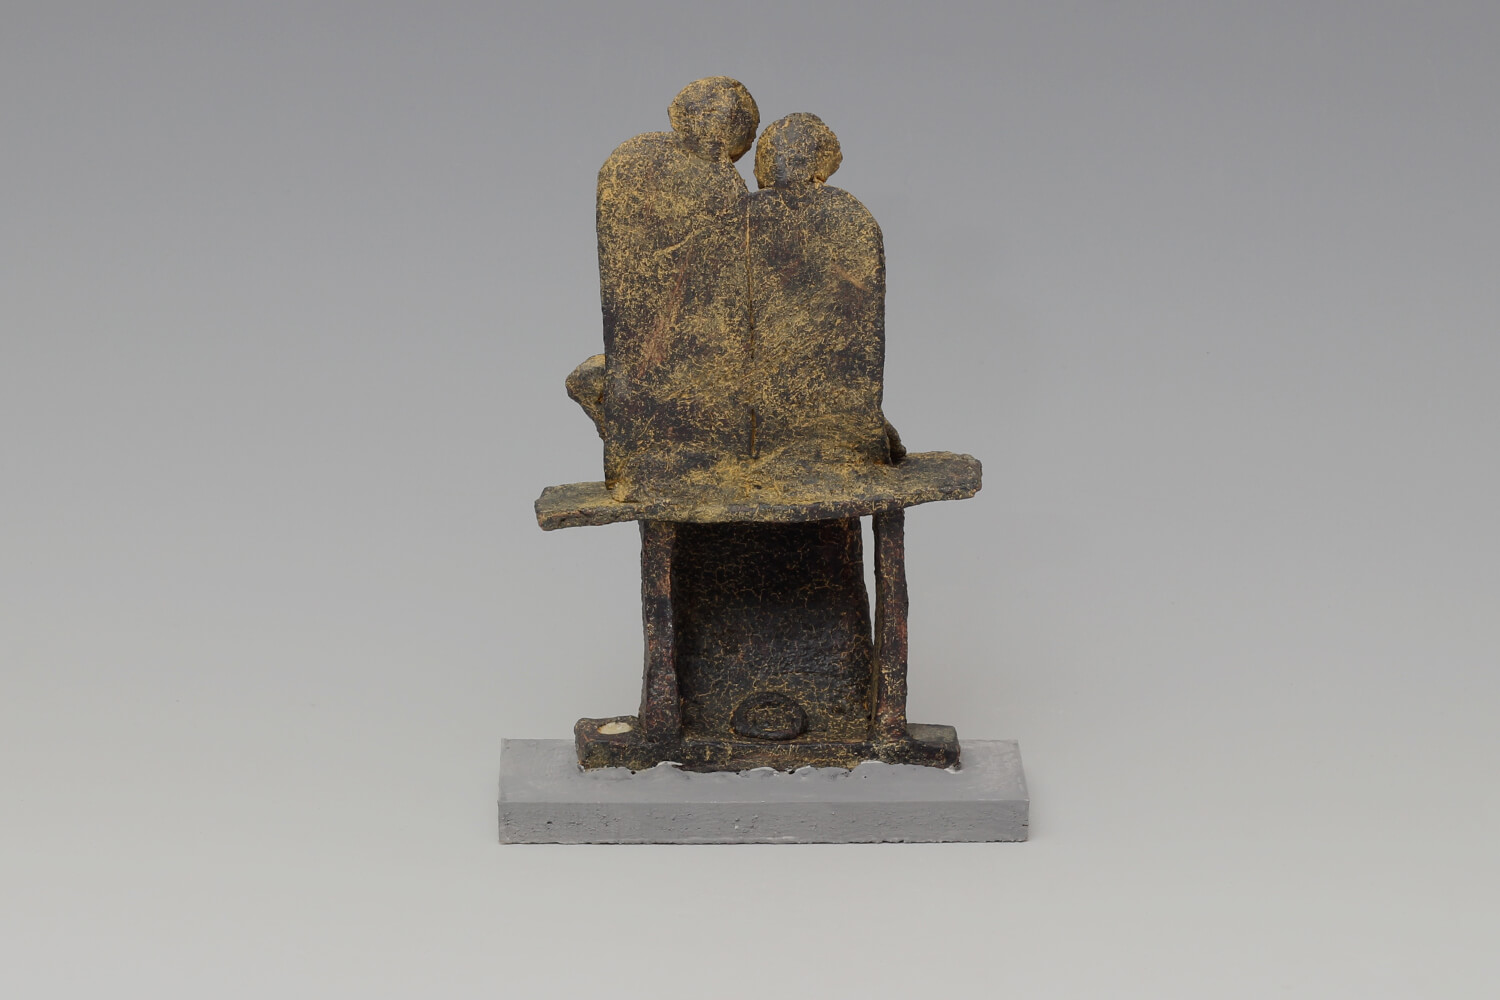 John Maltby Large Ceramic Sculpture of a Seated Family 027